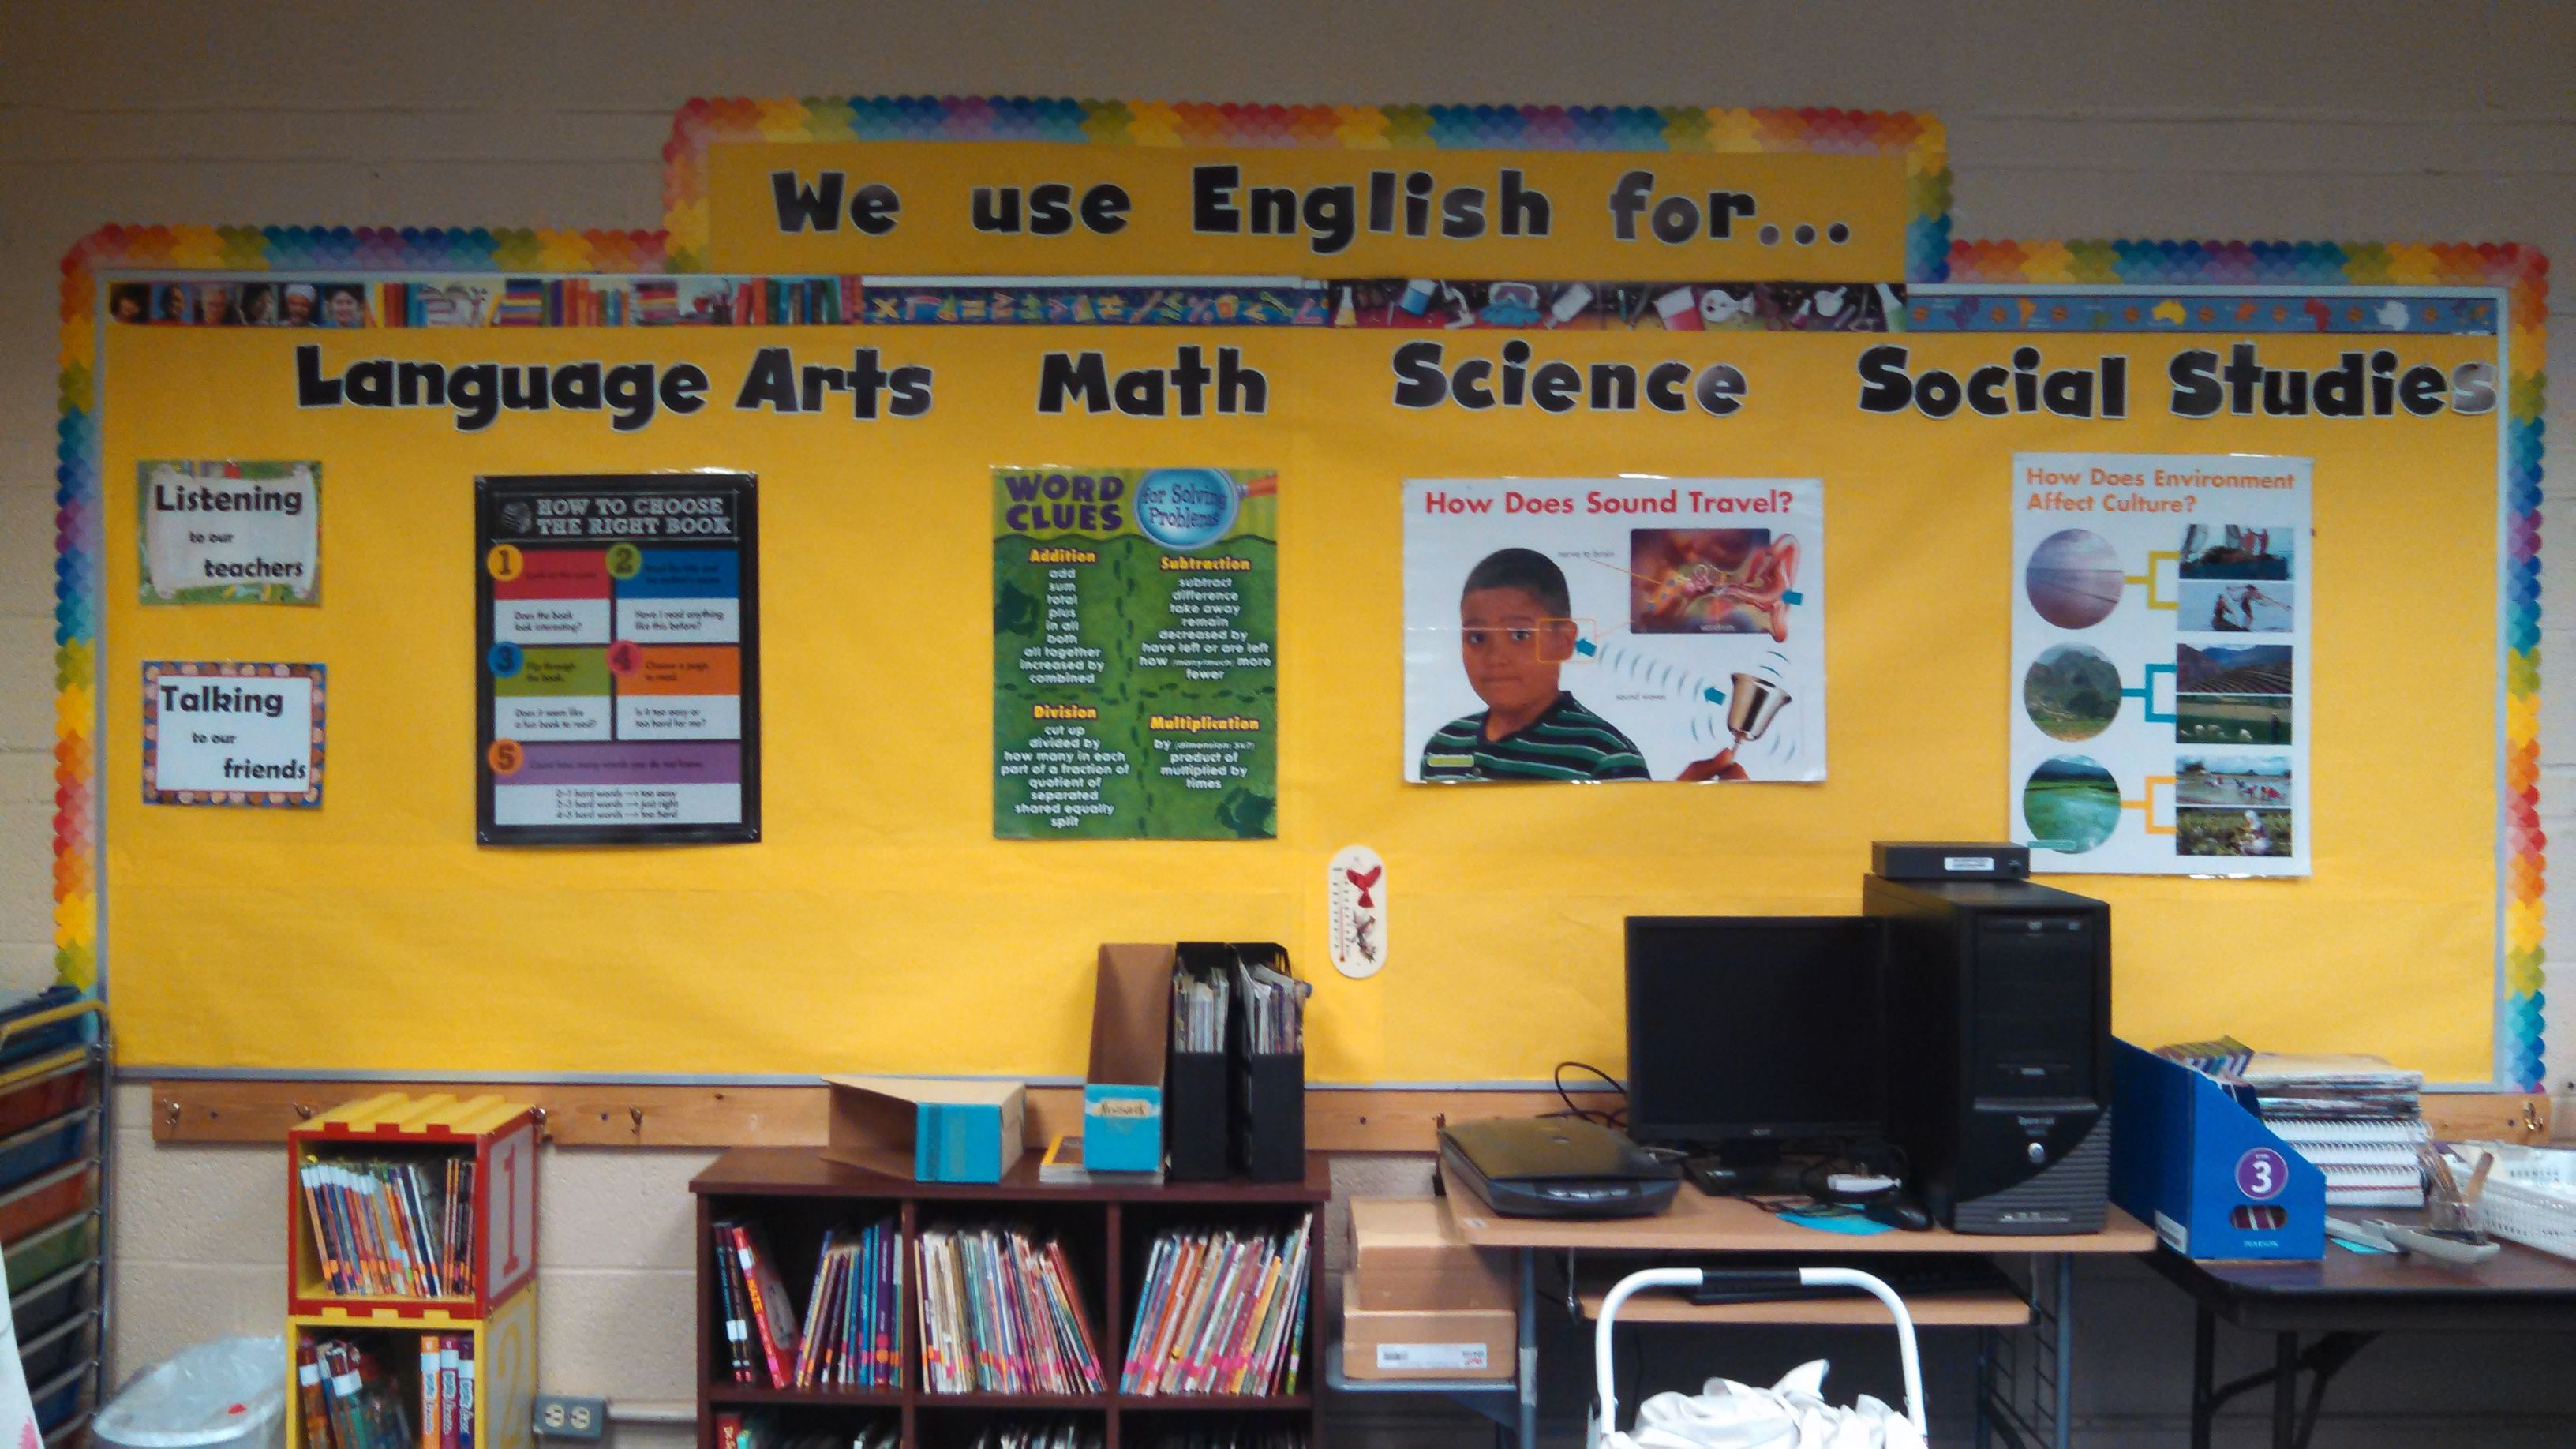 This bulletin board is designed to rotate out content posters or display student work in the content areas. It is somewhat based on the WIDA standards